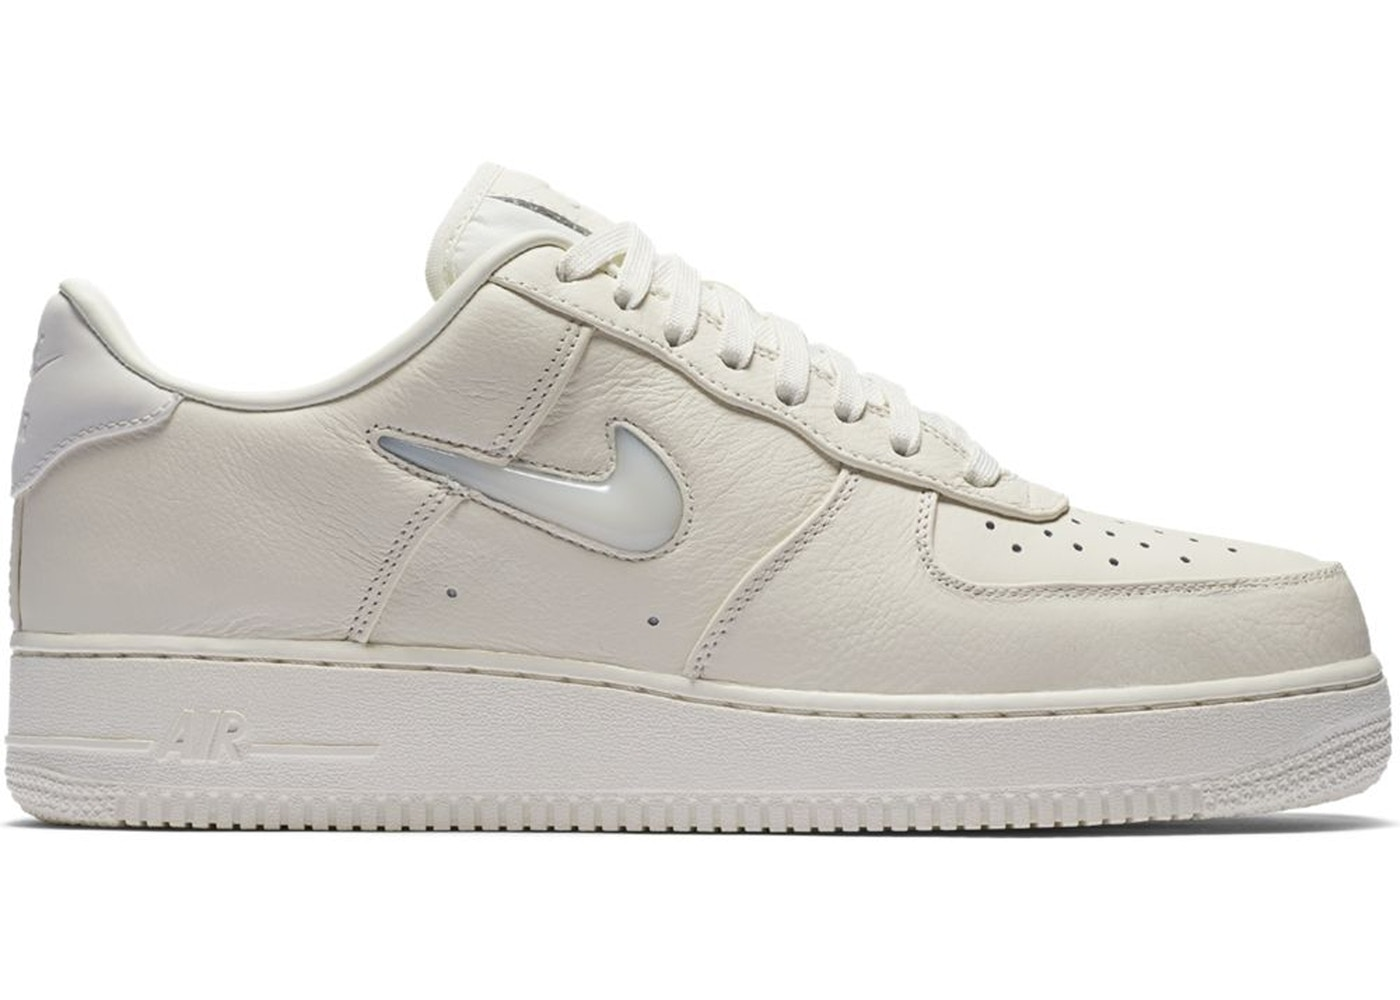 Nike Air Force 1 Low Jewel Sail